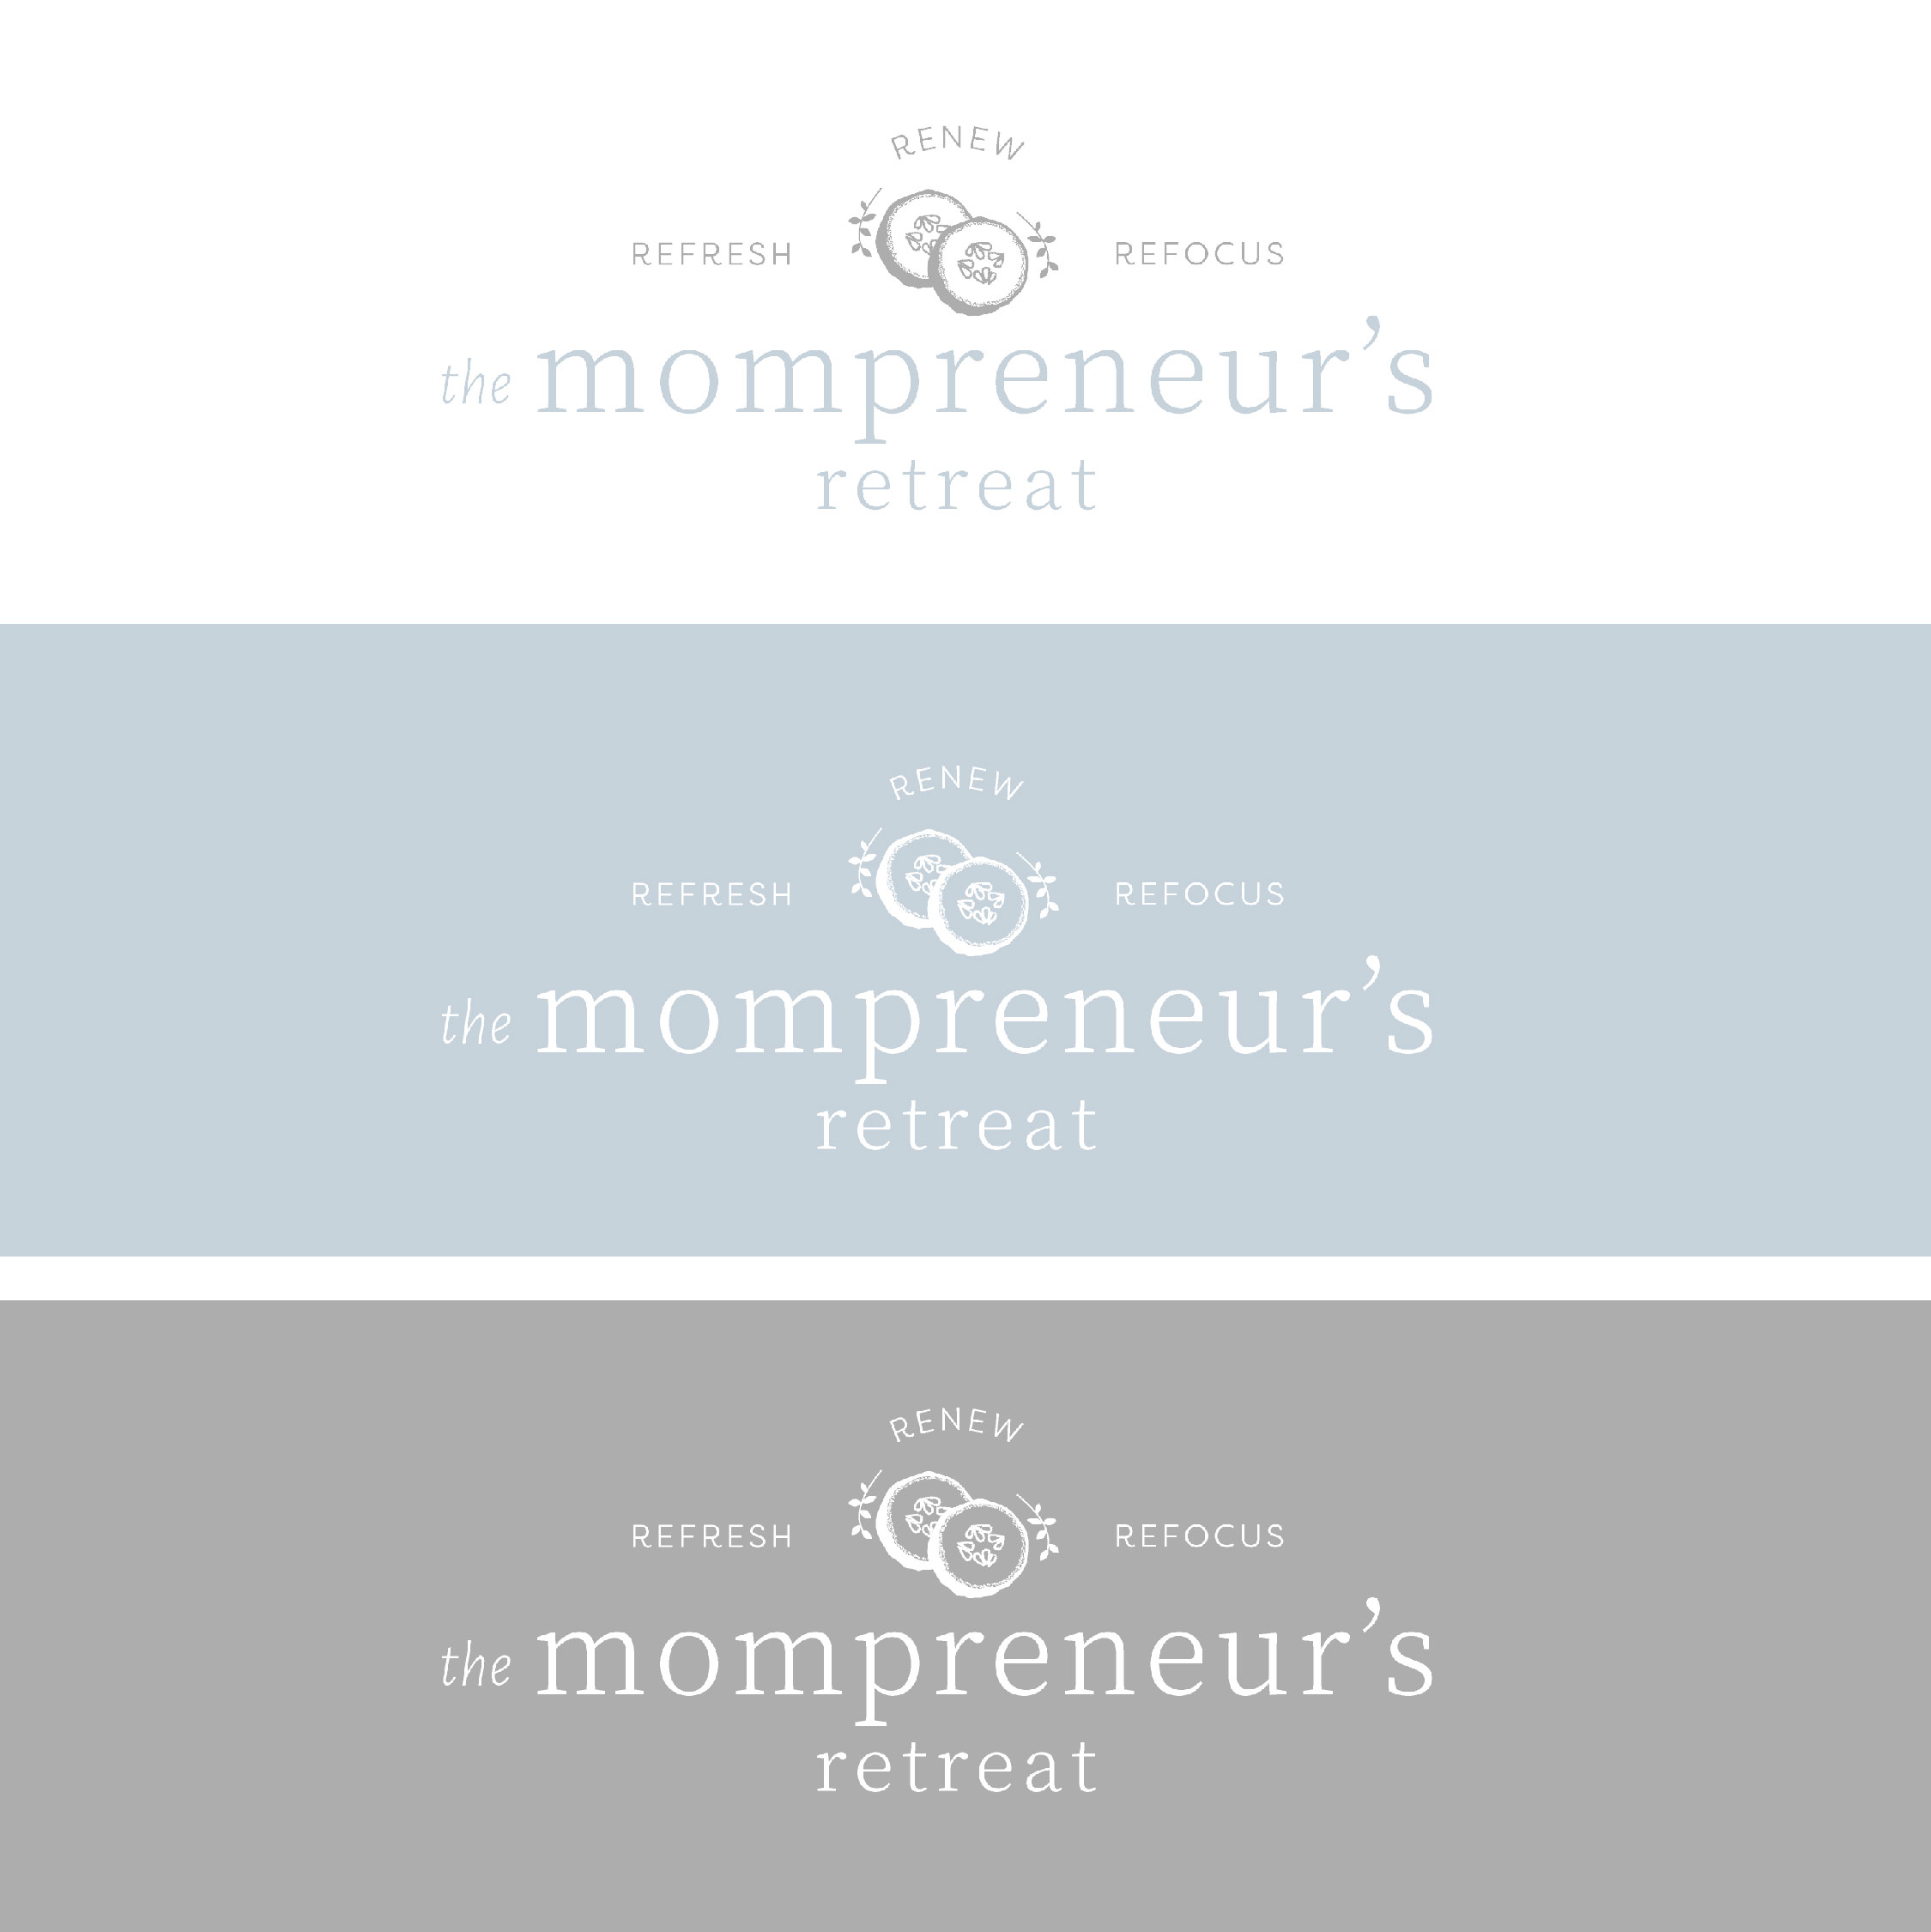 The Houston Mompreneur's Retreat Brand Reveal Logo Design by Kindly by Kelsea